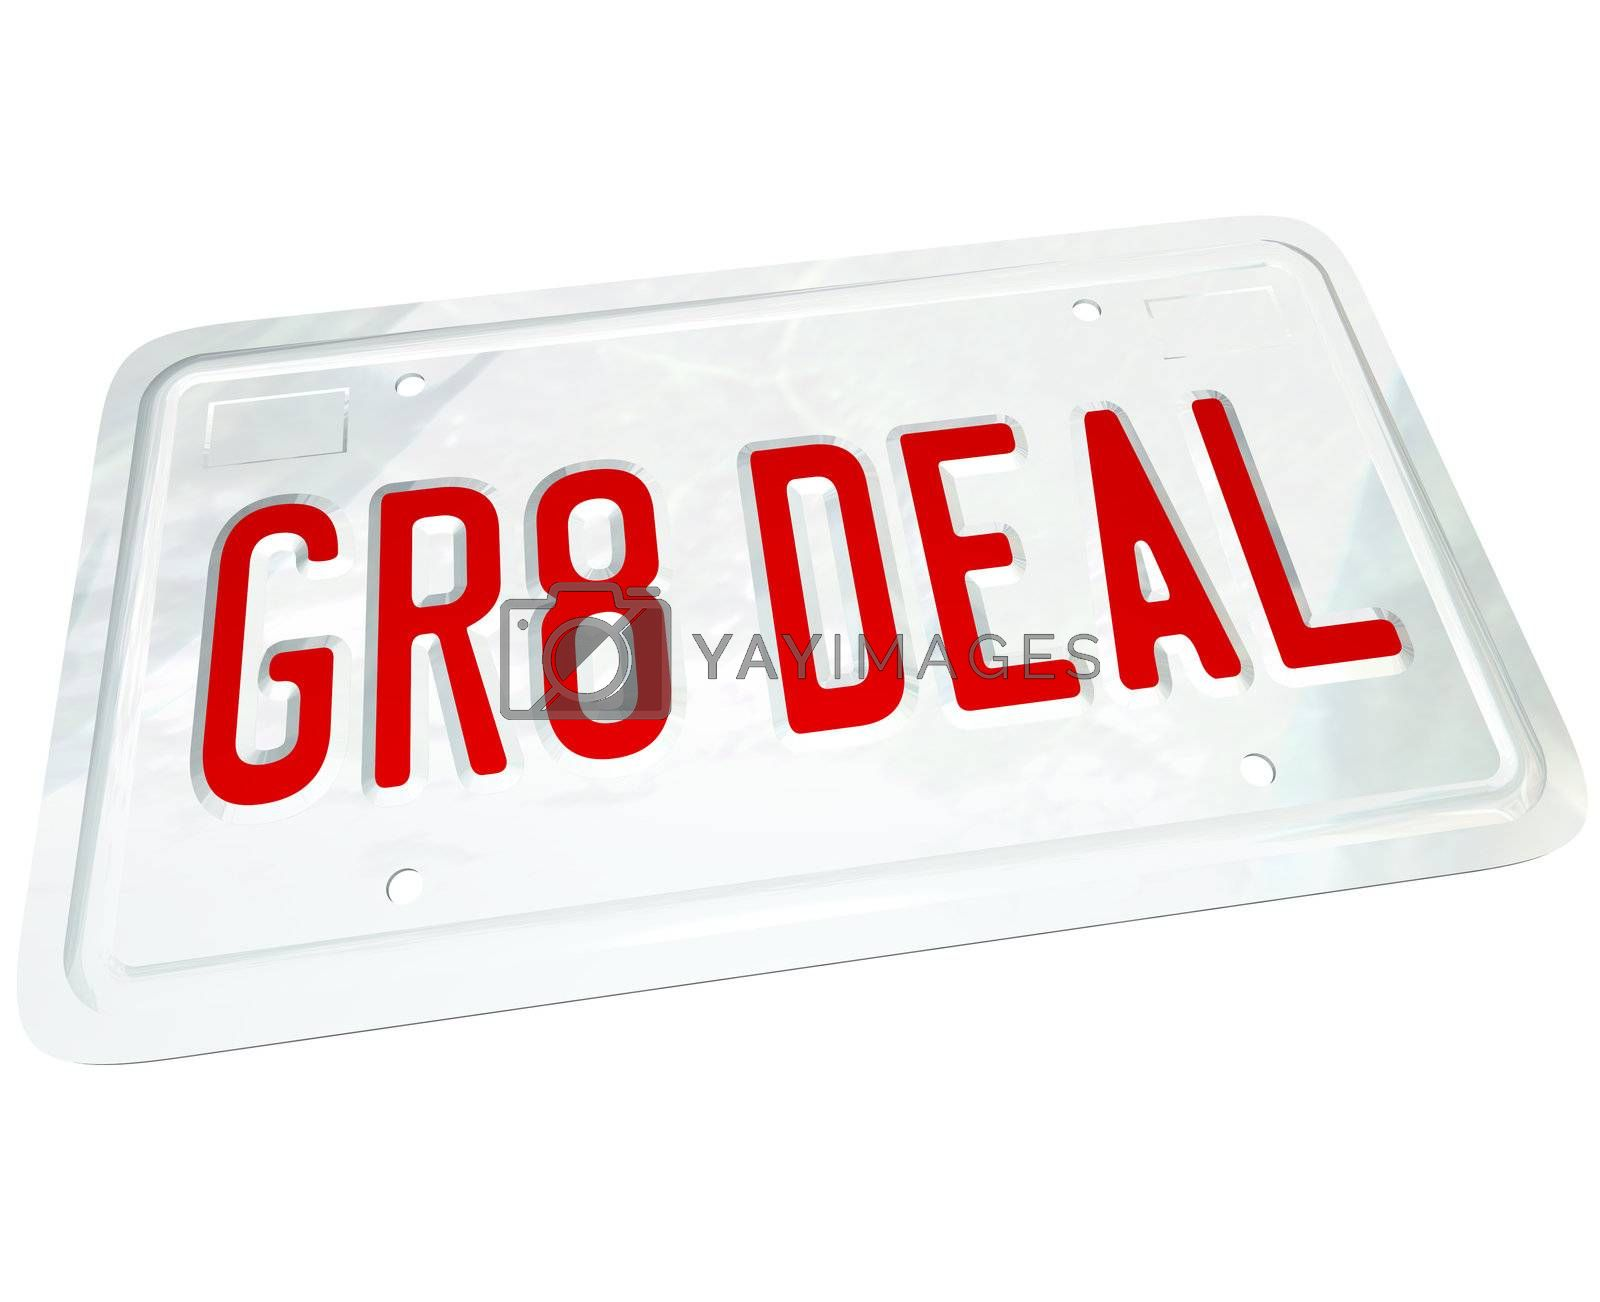 A license plate with the letters GR8 DEAL representing the savings you find on a great used or new vehicle while shopping for an automobile